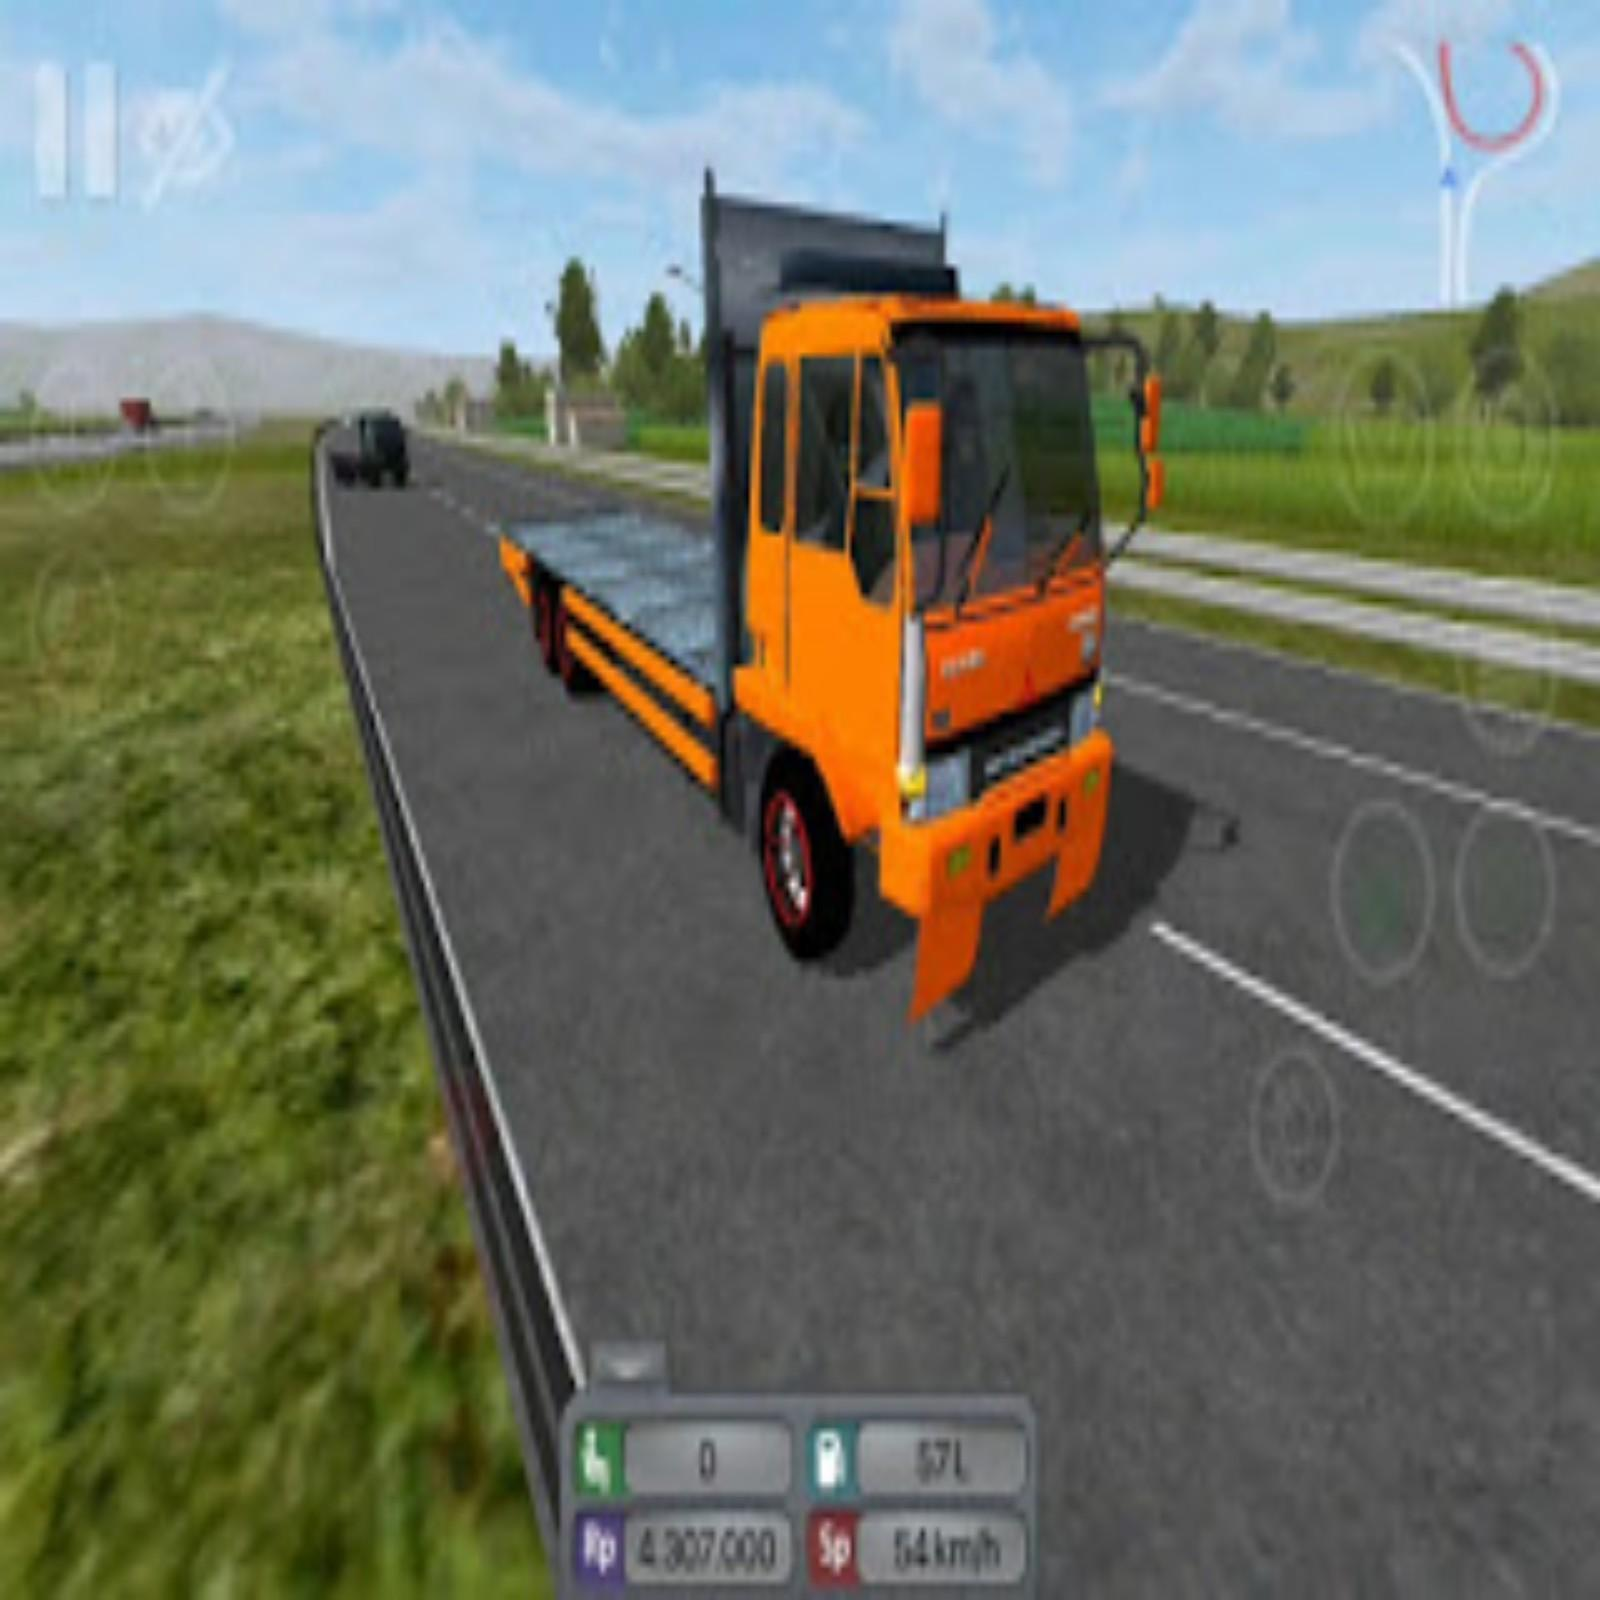 Mod Truck Fuso Bussid V3 0 for Android - APK Download